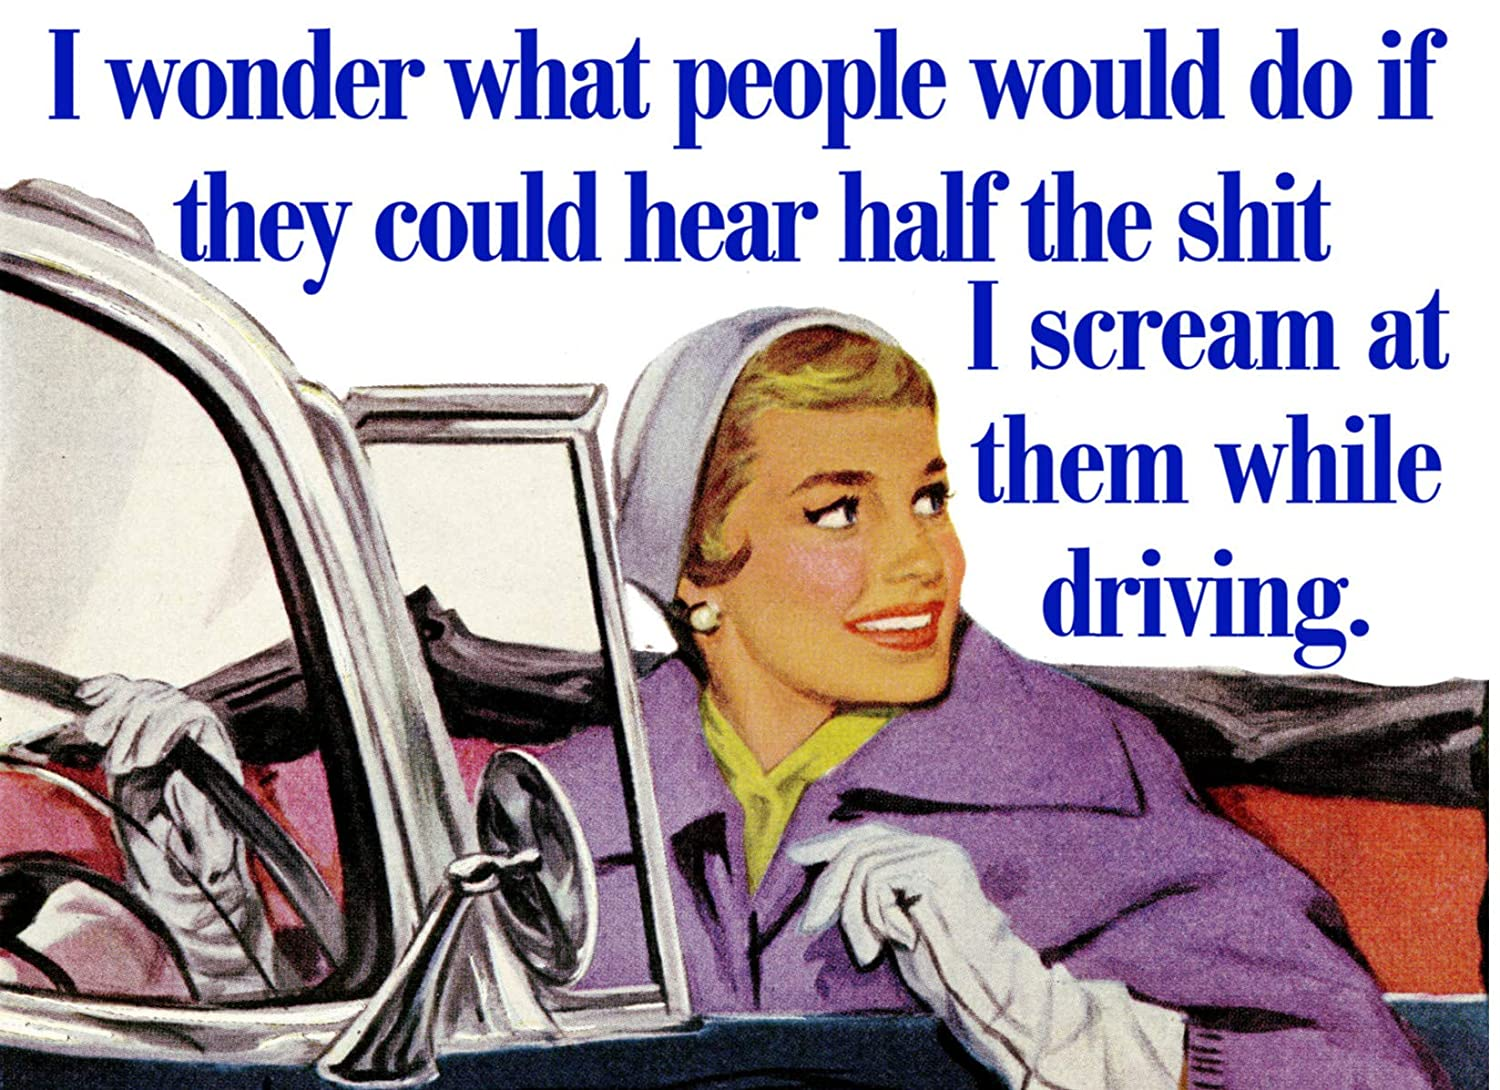 """I WONDER WHAT PEOPLE WOULD DO IF THEY COULD HEAR HALF THE SHIT I SCREAM AT THEM WHILE DRIVING 2"""" x 3"""" Fridge Magnet Refrigerator vintage image Gift retro funny humor"""